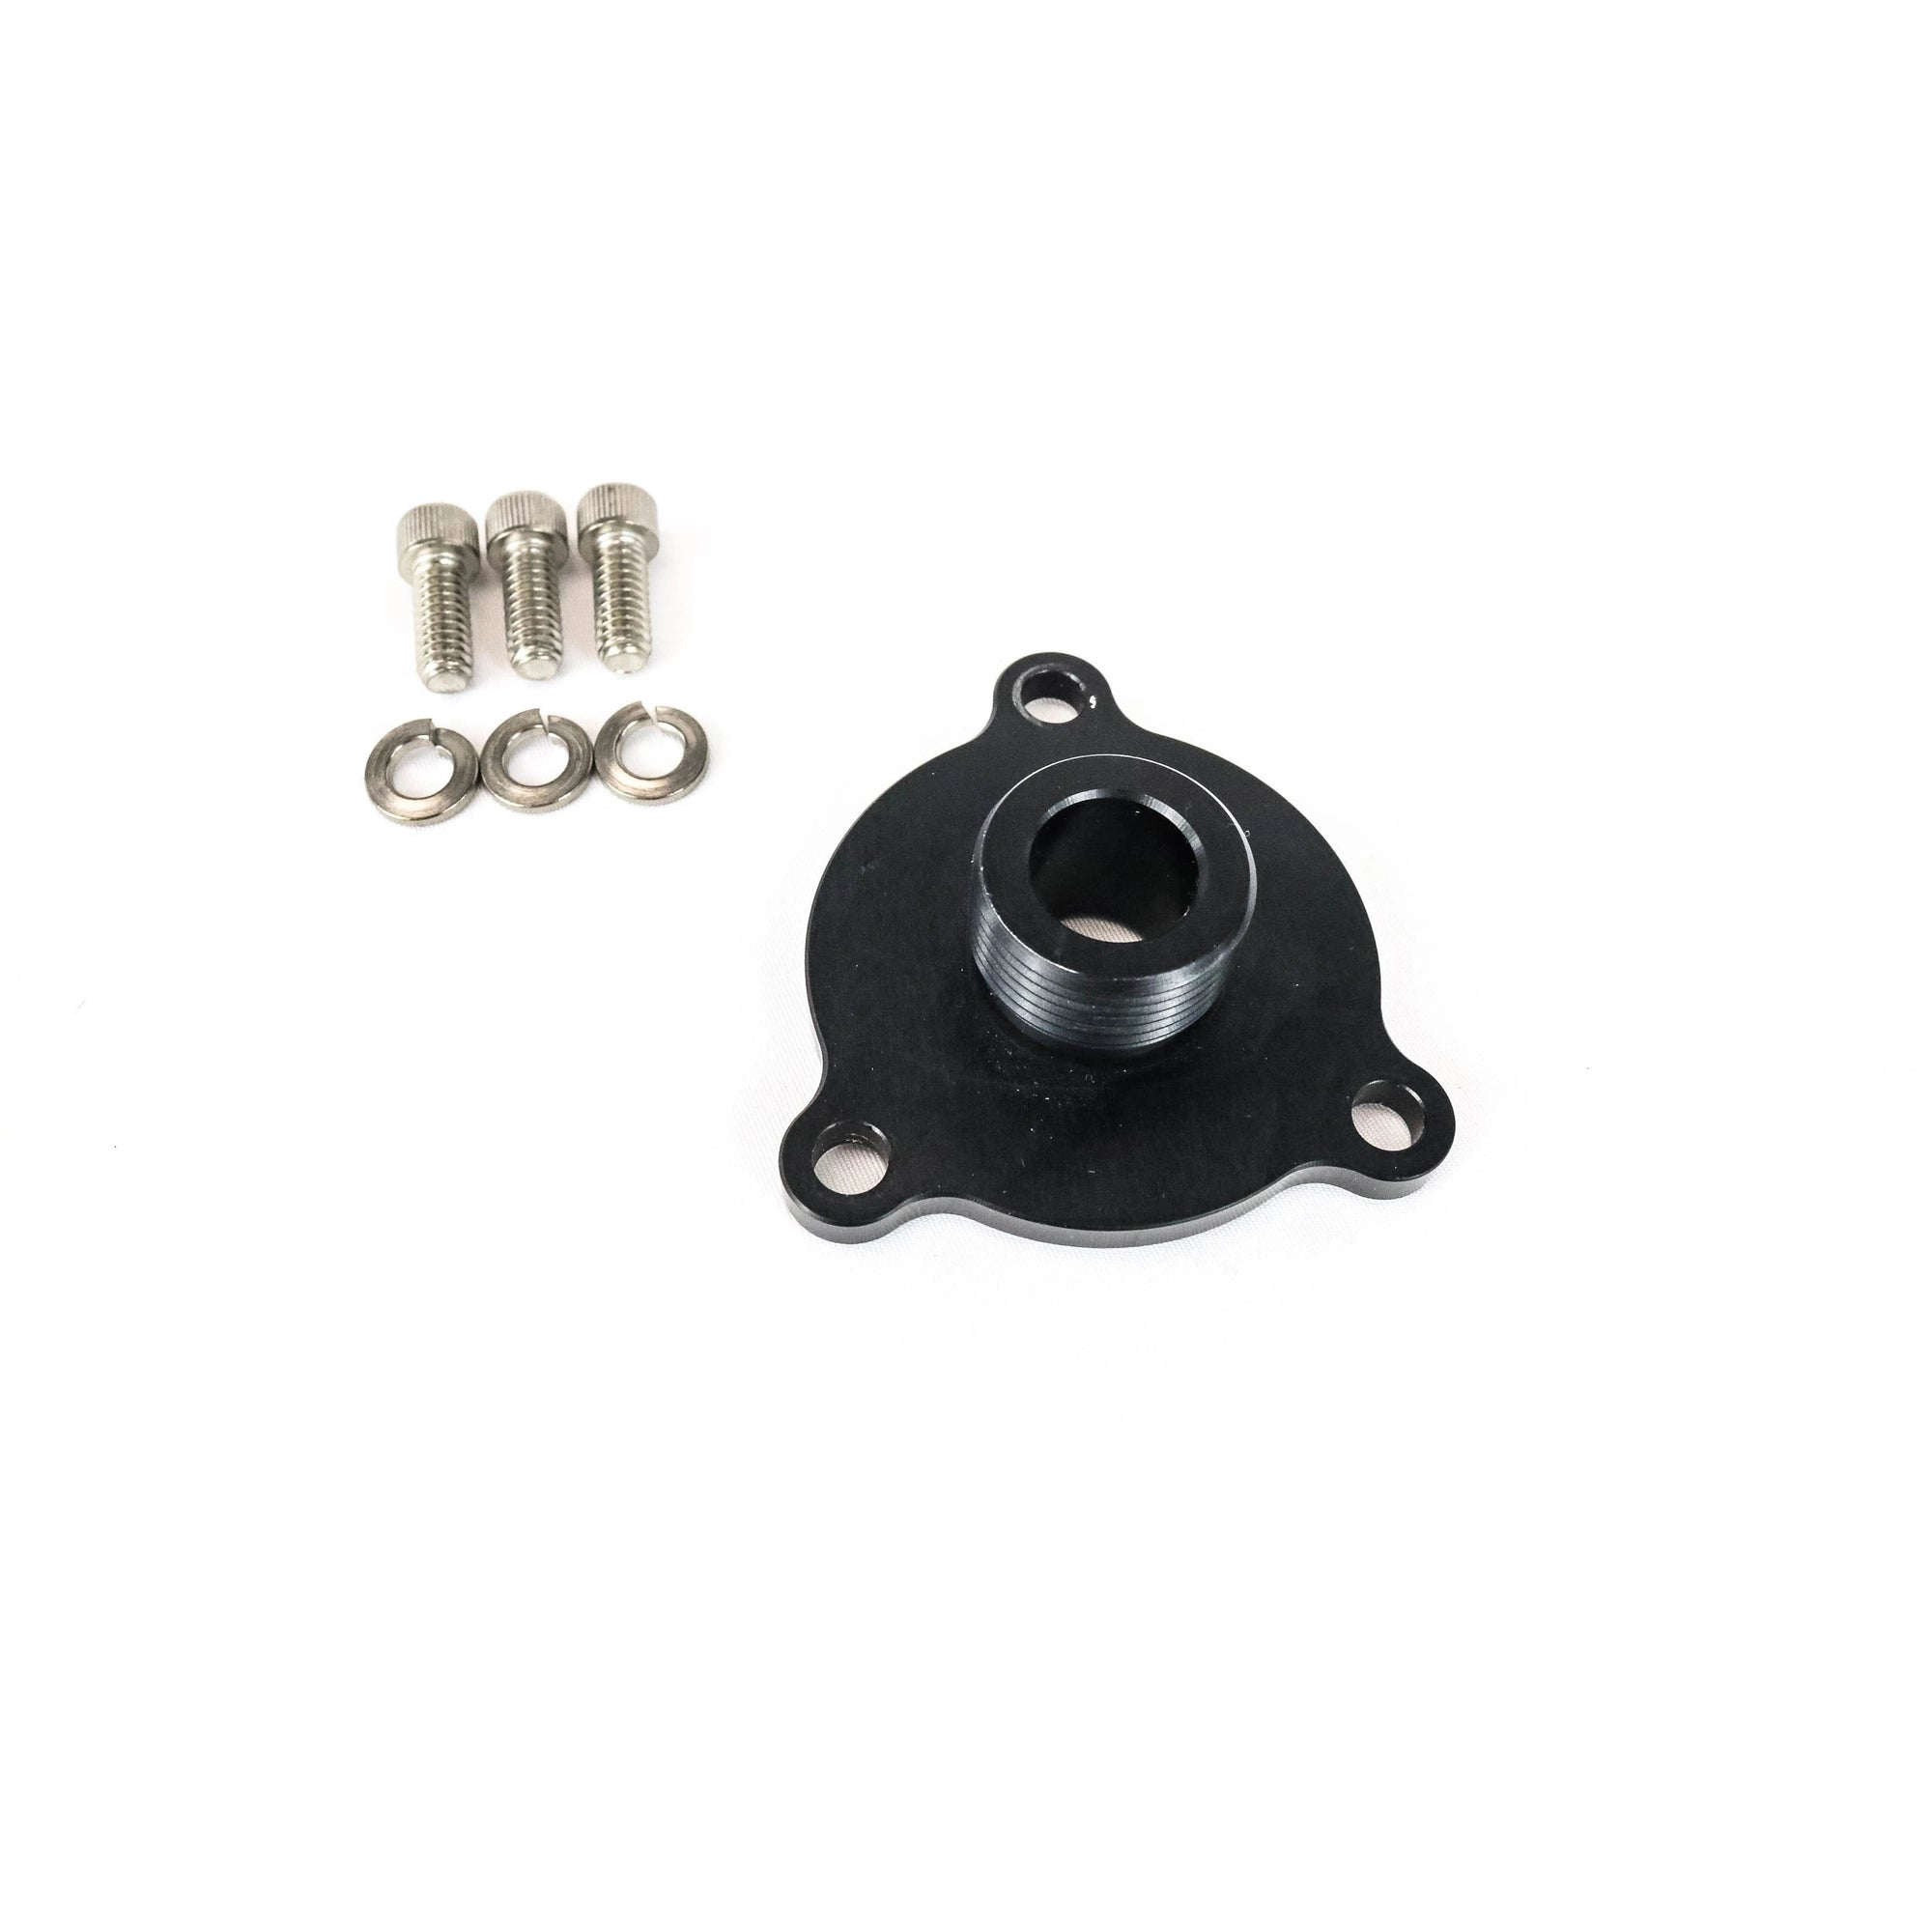 Motion Raceworks Adaptor for Large / XL Cable for Cable Drive Fuel Pumps-Motion Raceworks-Motion Raceworks